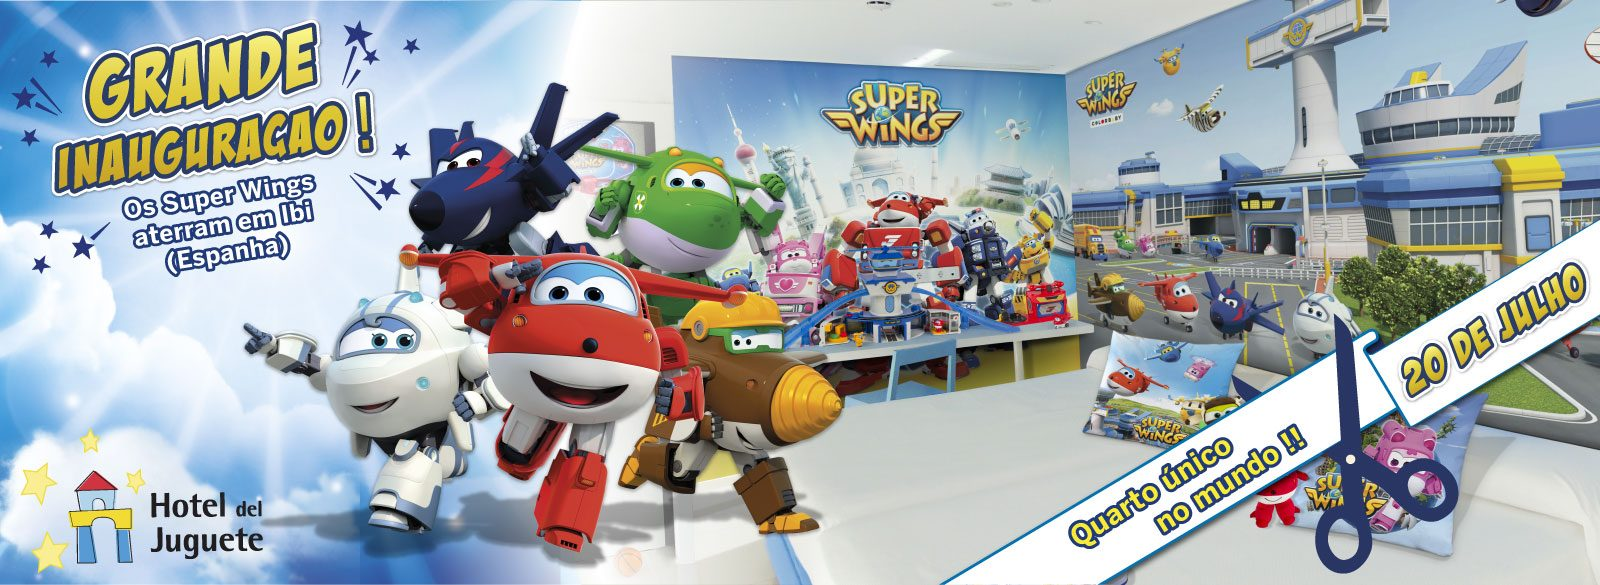 Super Wings Hotel Juguete